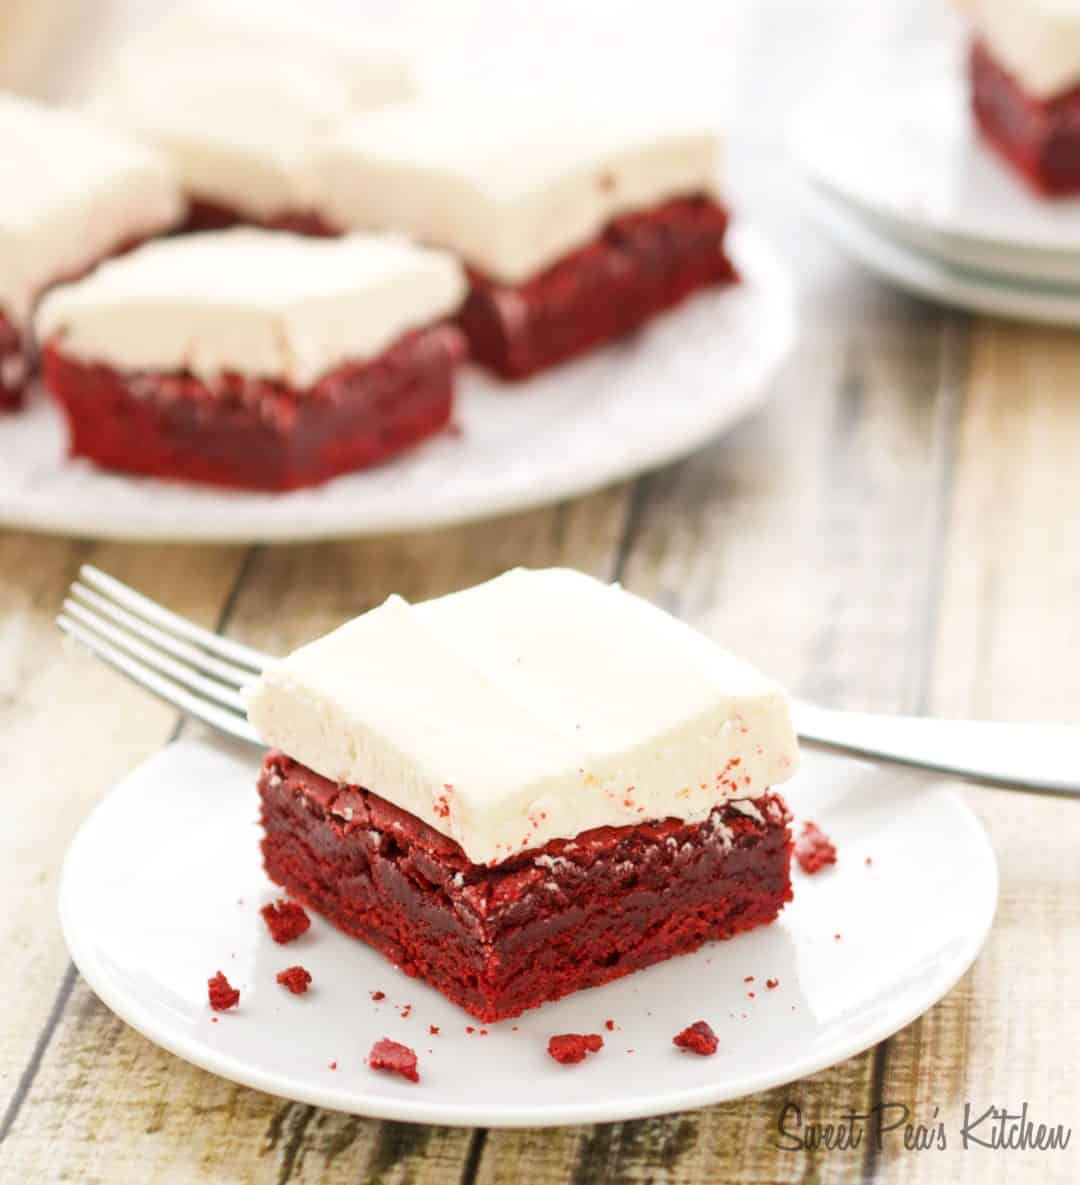 A single slice of red velvet brownies sitting on a white saucer